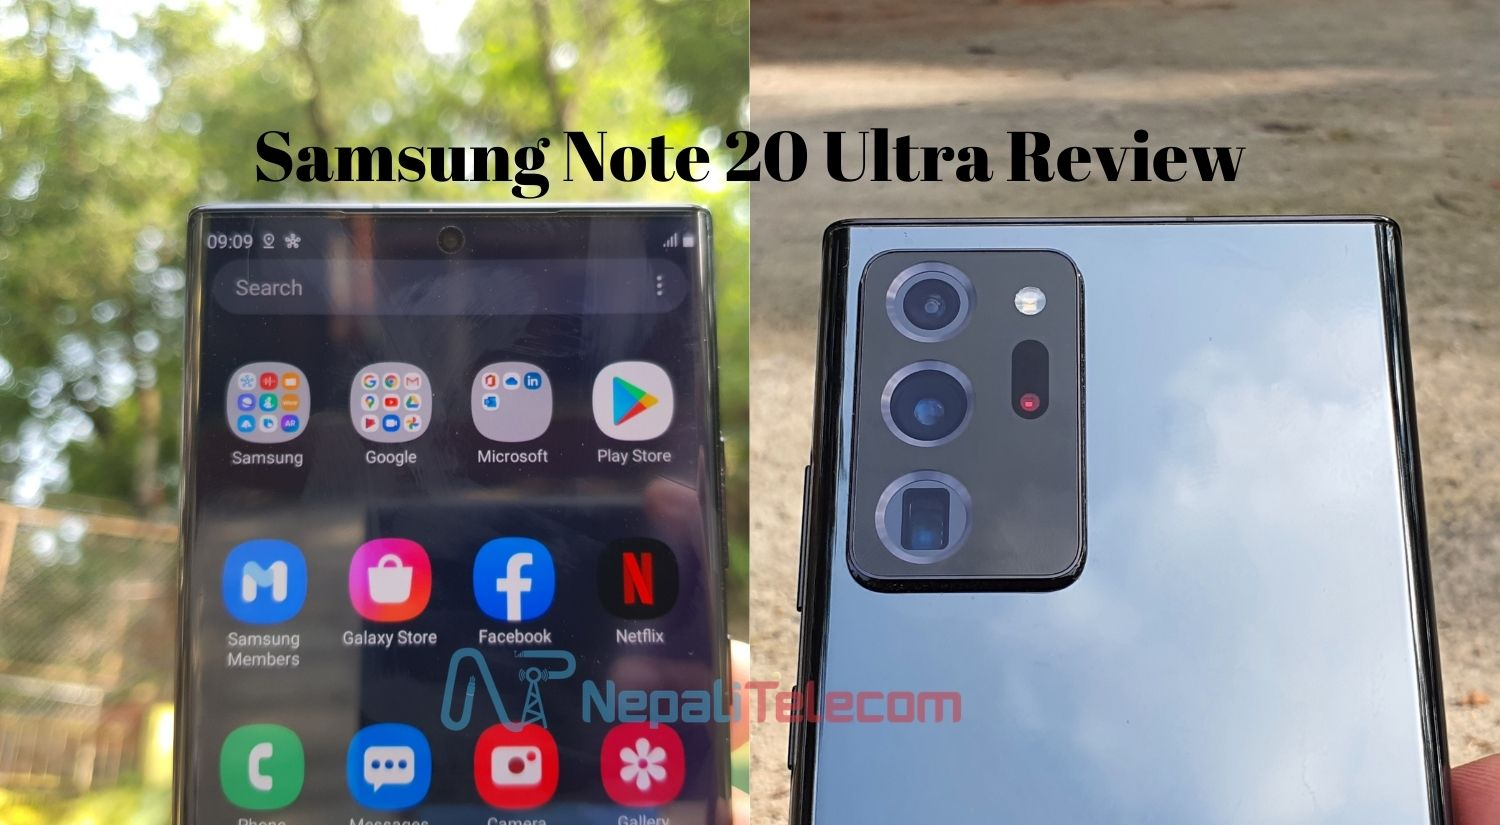 Samsung Note 20 Ultra review